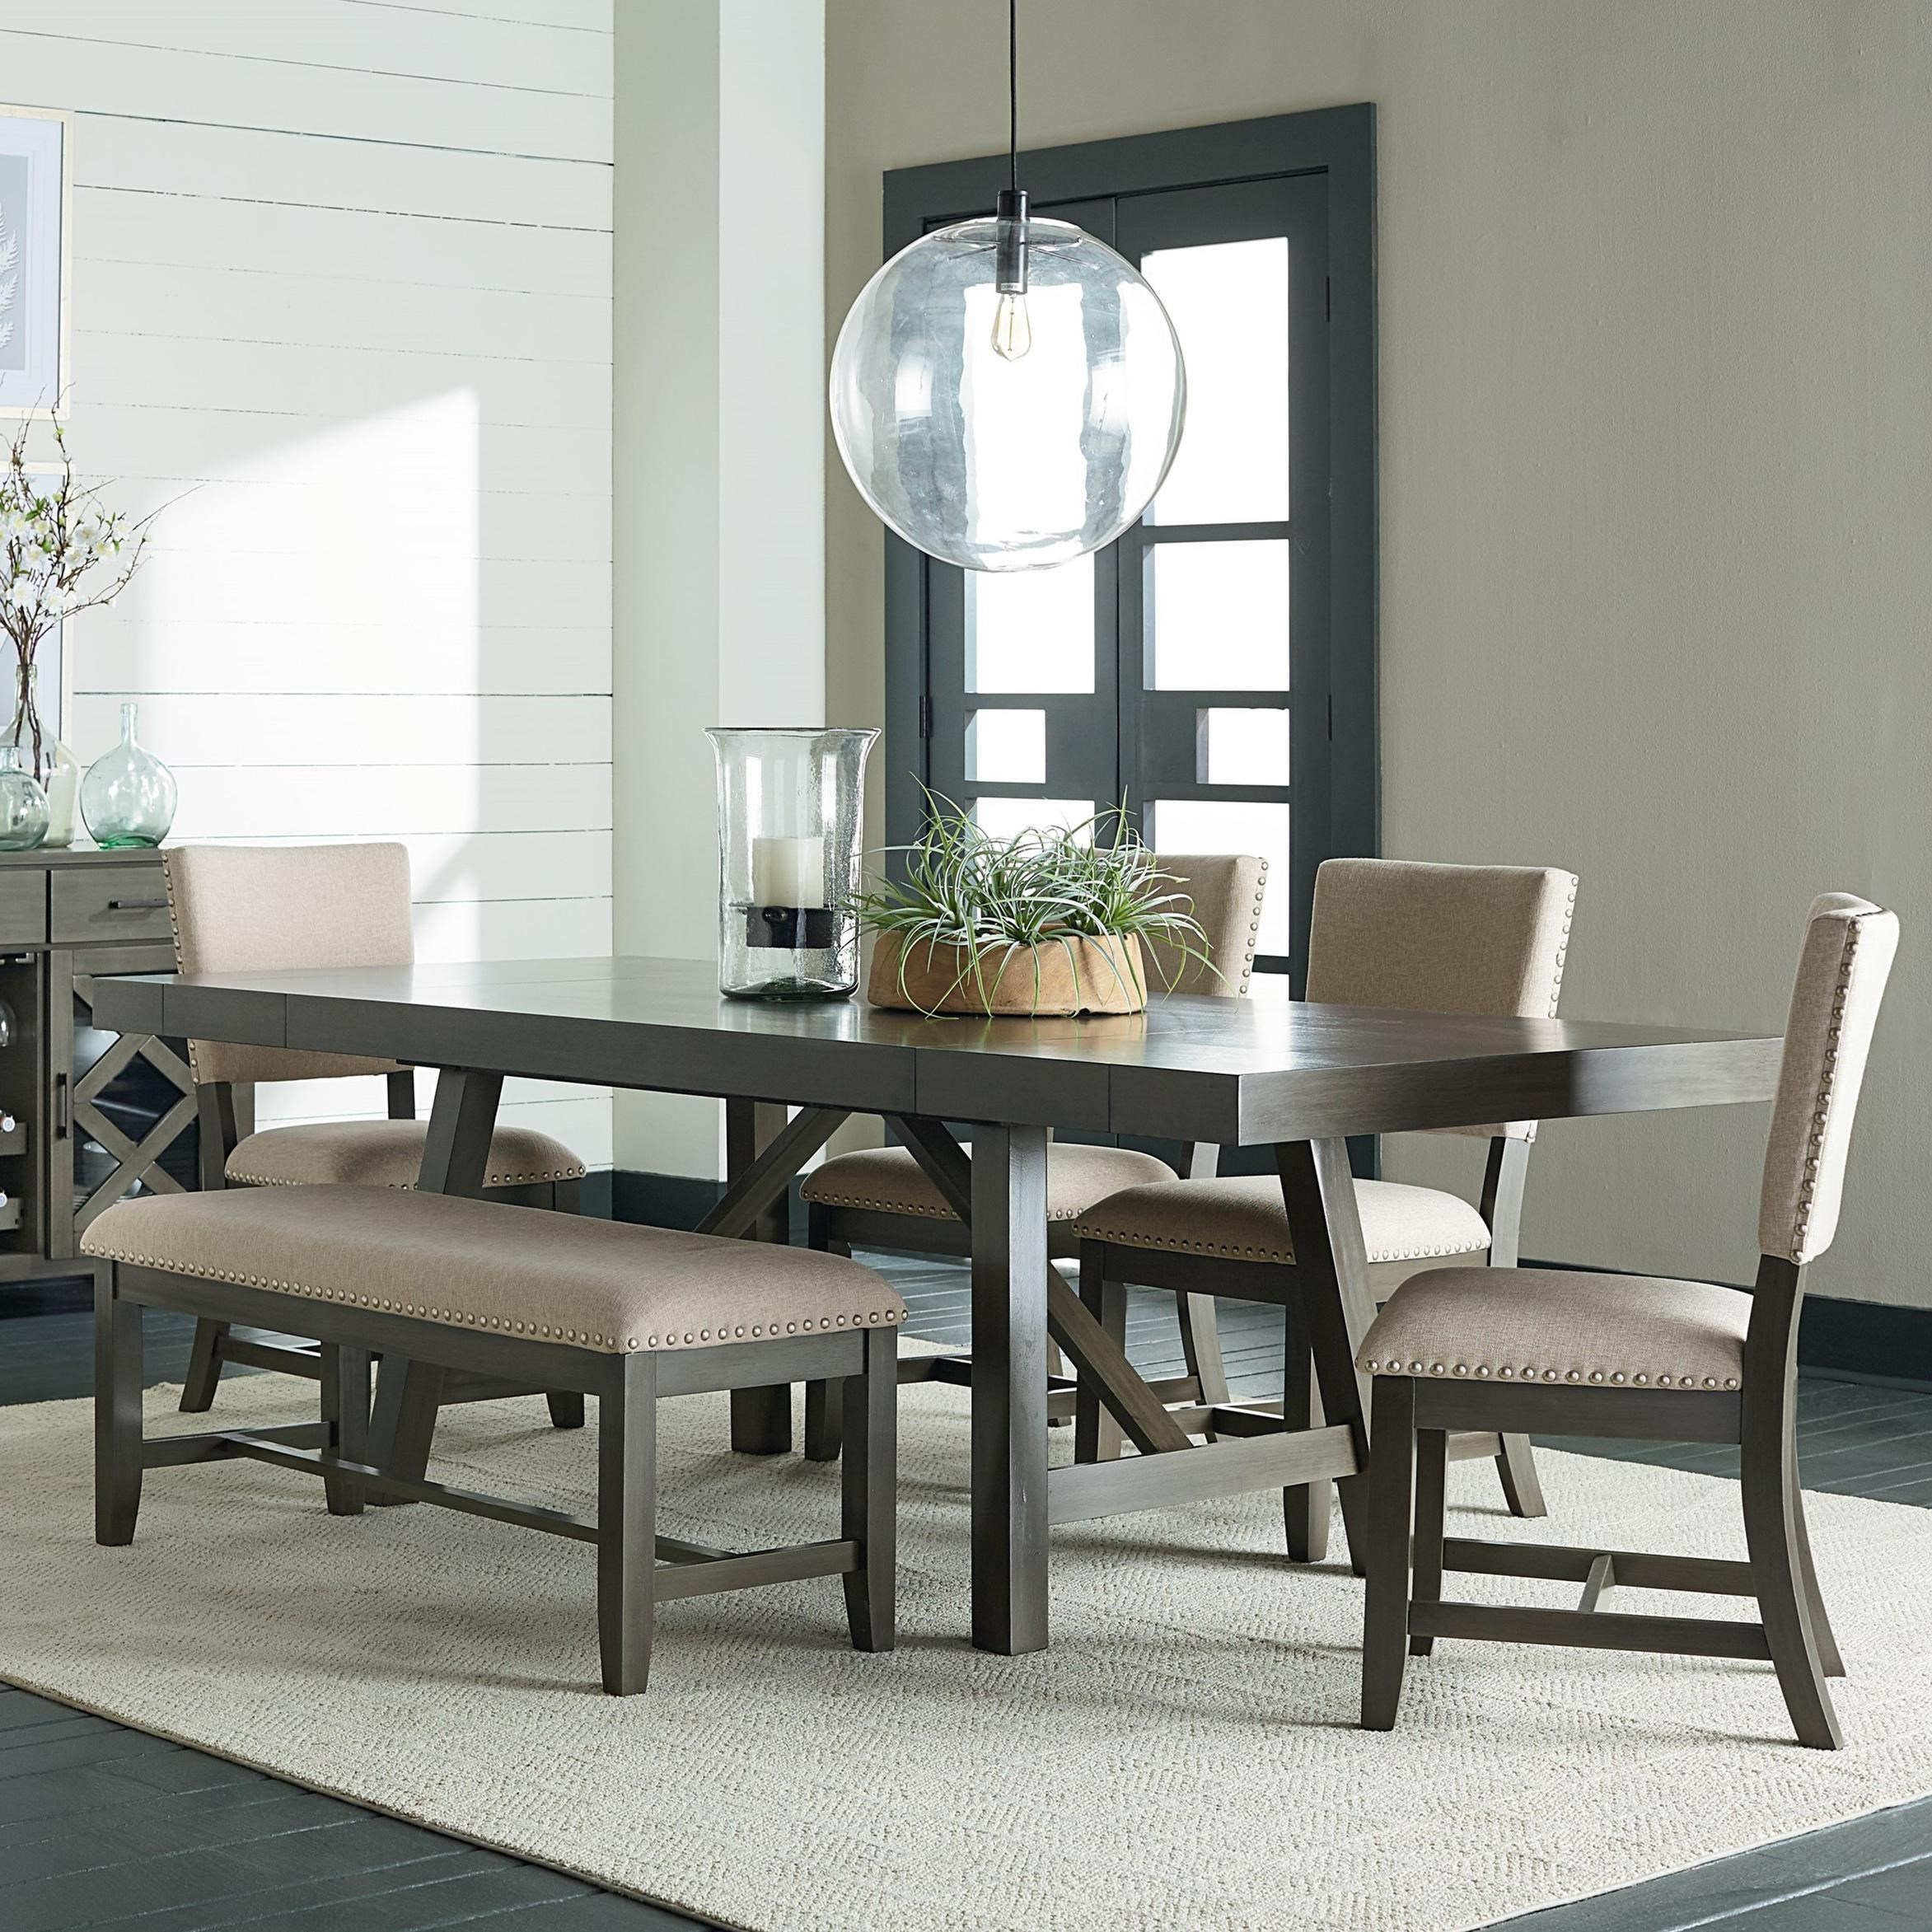 Standard Furniture Omaha Grey 6 Piece Trestle Table Dining  : products2Fstandardfurniture2Fcolor2Fomaha166812B882B4x87 b11jpgscalebothampwidth500ampheight500ampfsharpen25ampdown from www.powellsfurniture.com size 500 x 500 jpeg 61kB